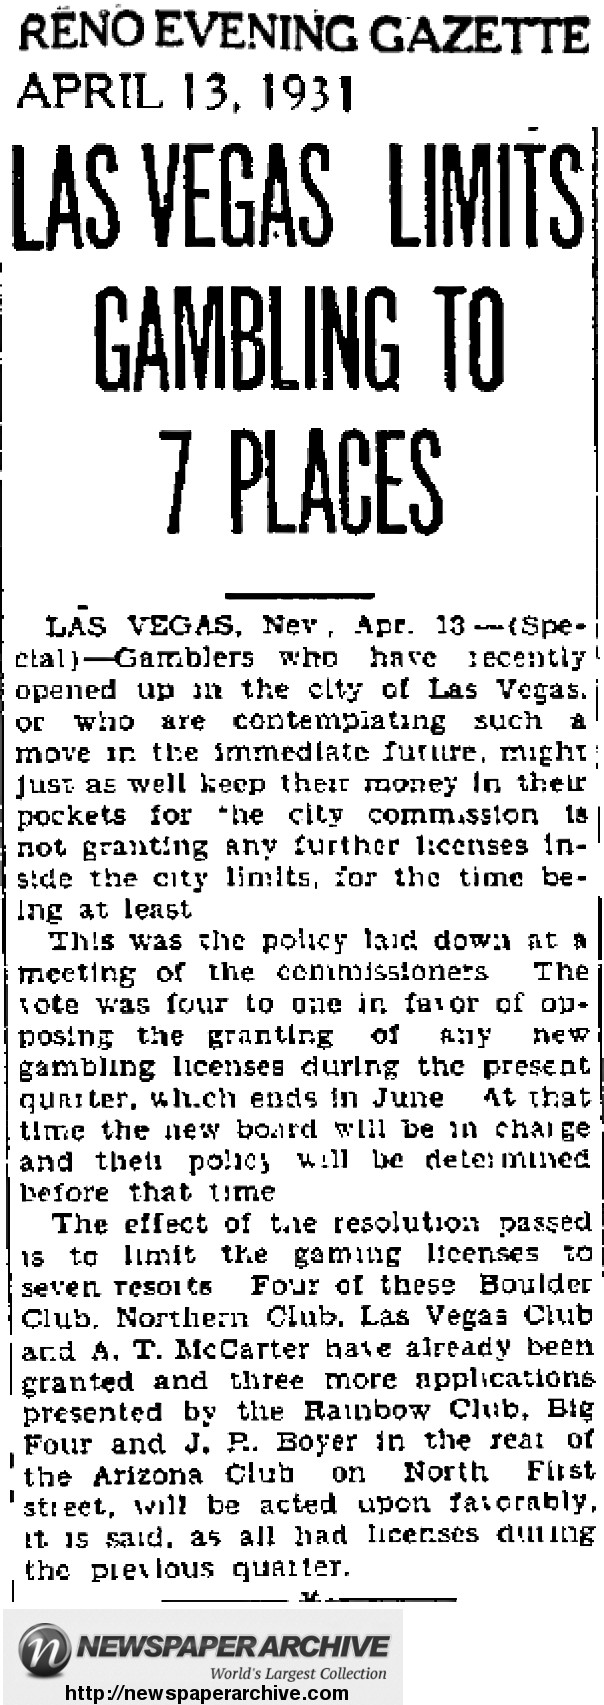 1931 Las Vegas resolution to limit new gambling licenses.